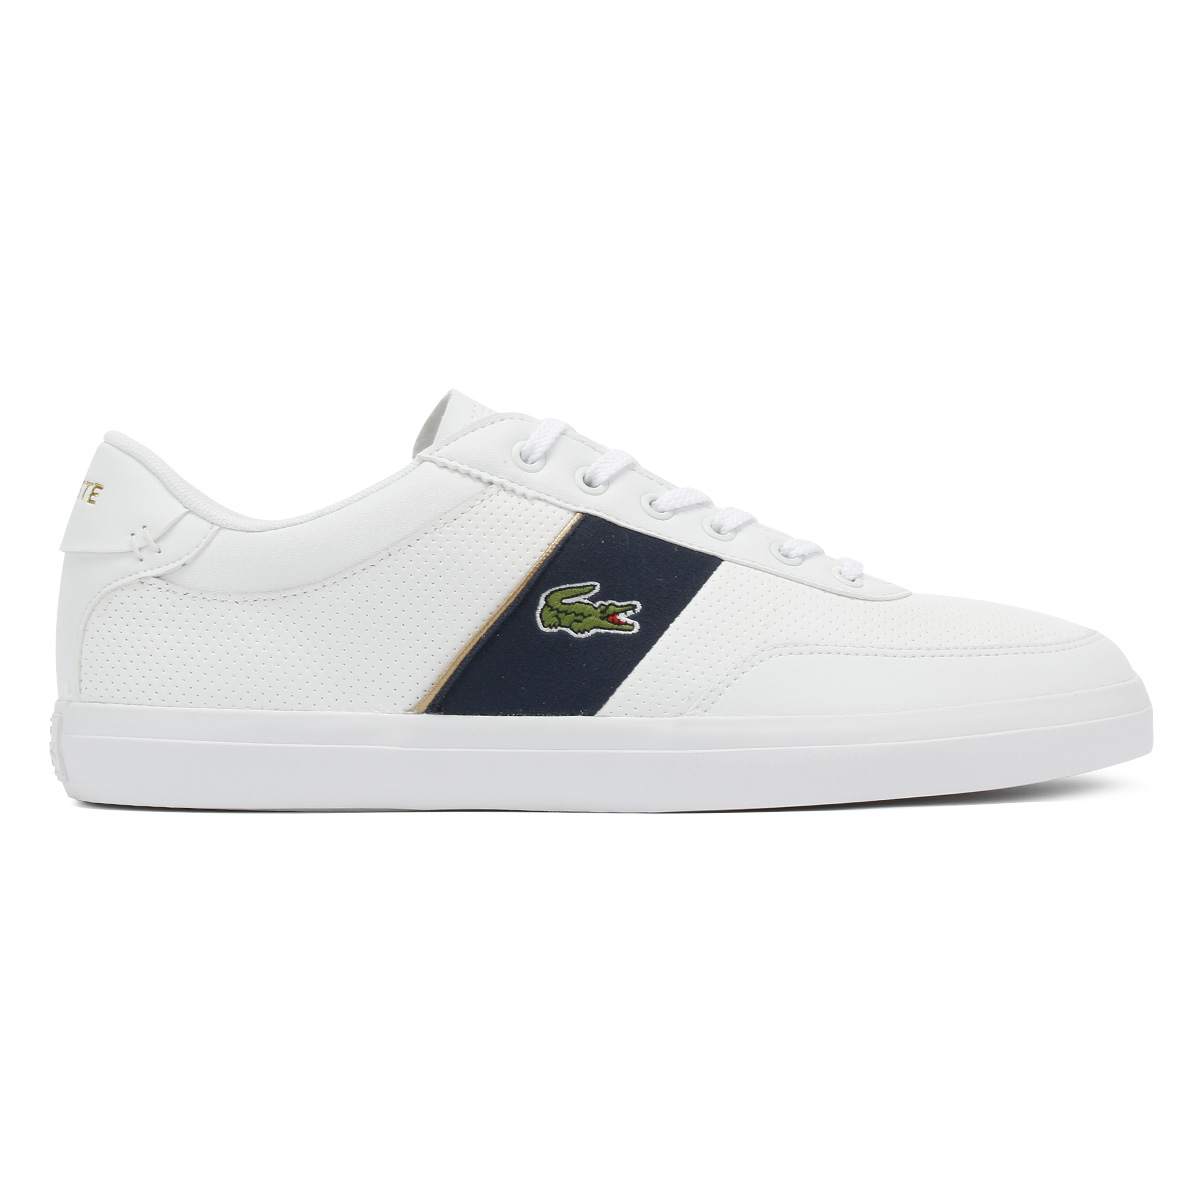 Lacoste 1 Mens 318 Navy Trainers White Master scarpe Court Sport casual rxrYd0qn4w